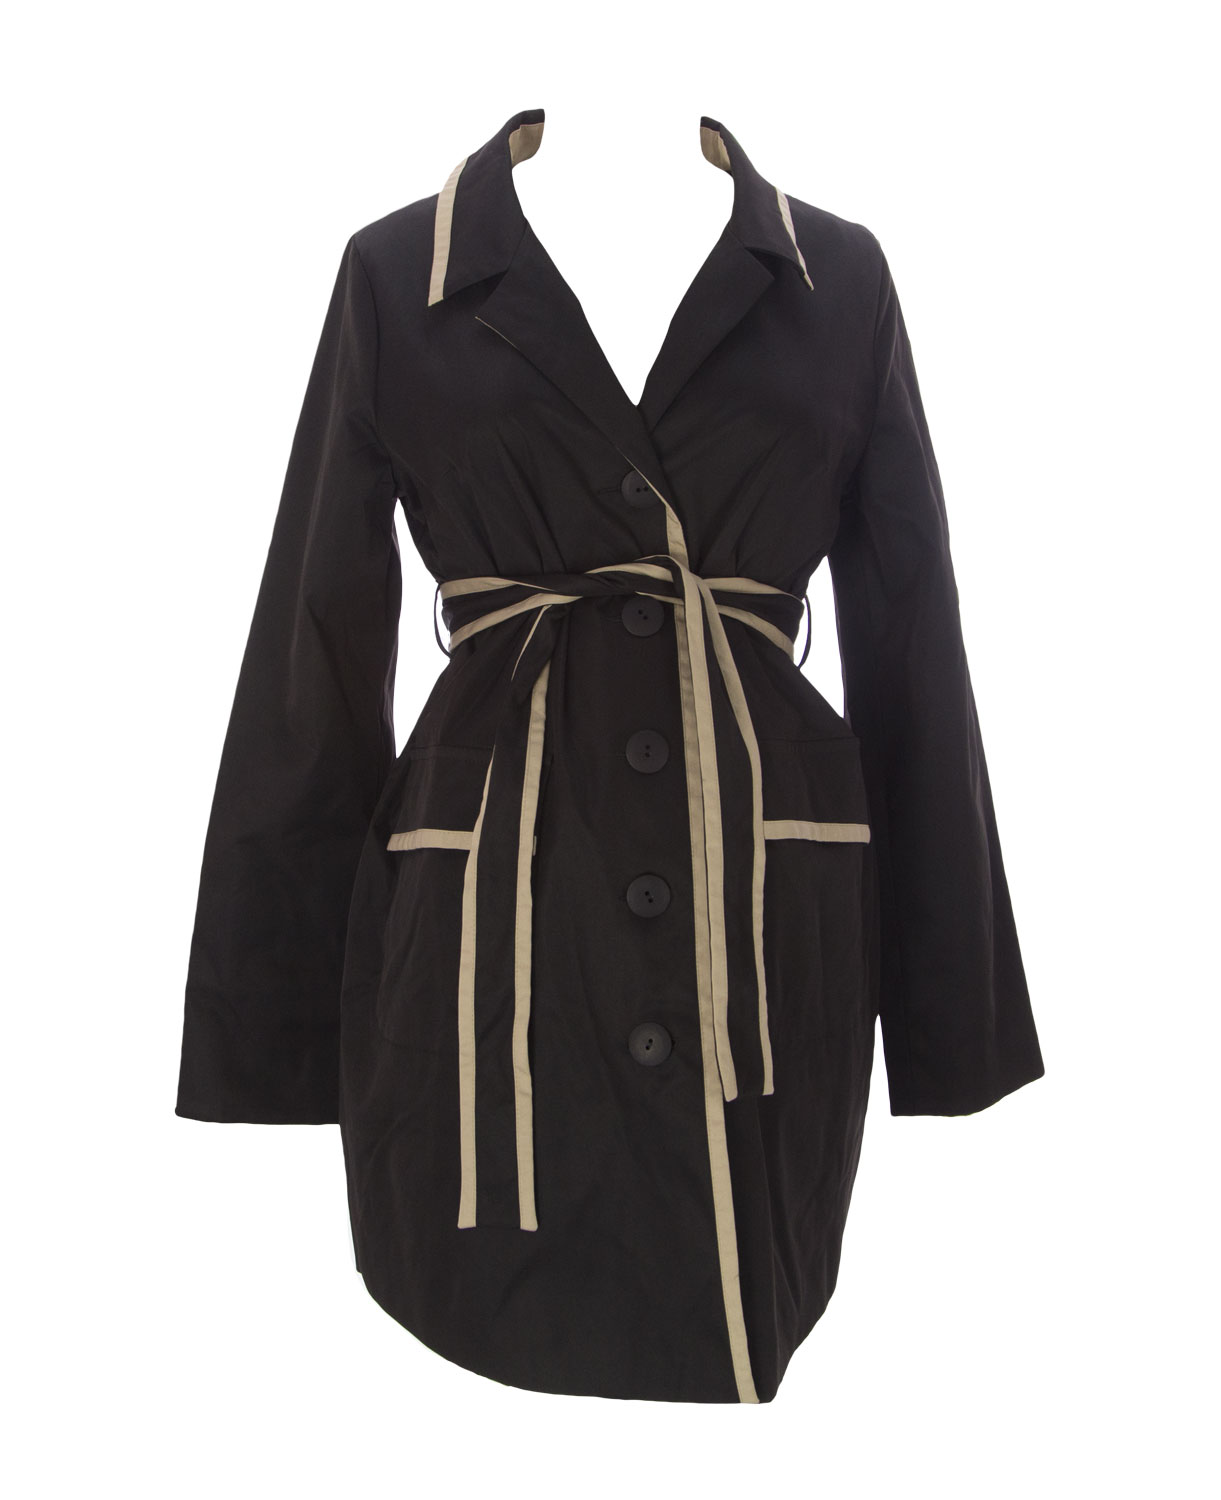 9FASHION Maternity Women's Goma Button-Up Belted Coat, Small, Black